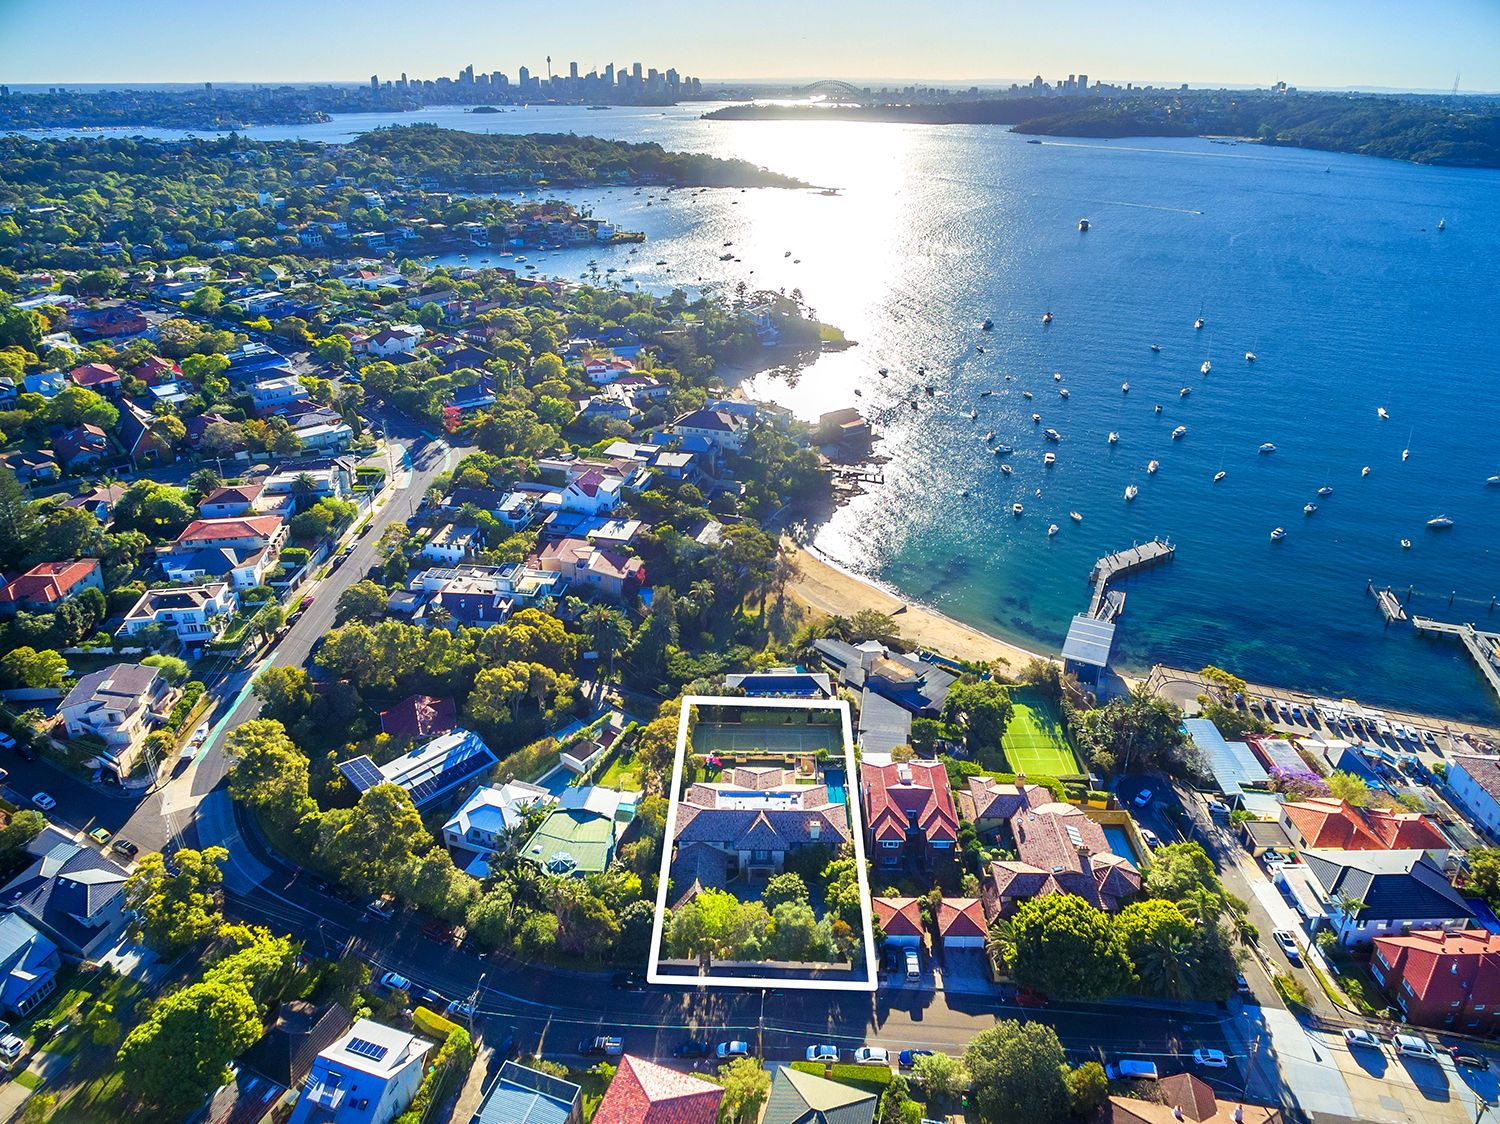 Single Family Home for Sale at Elegant Showpiece in a Prime Harbourside Position 178 Hopetoun Avenue Vaucluse, New South Wales,2030 Australia